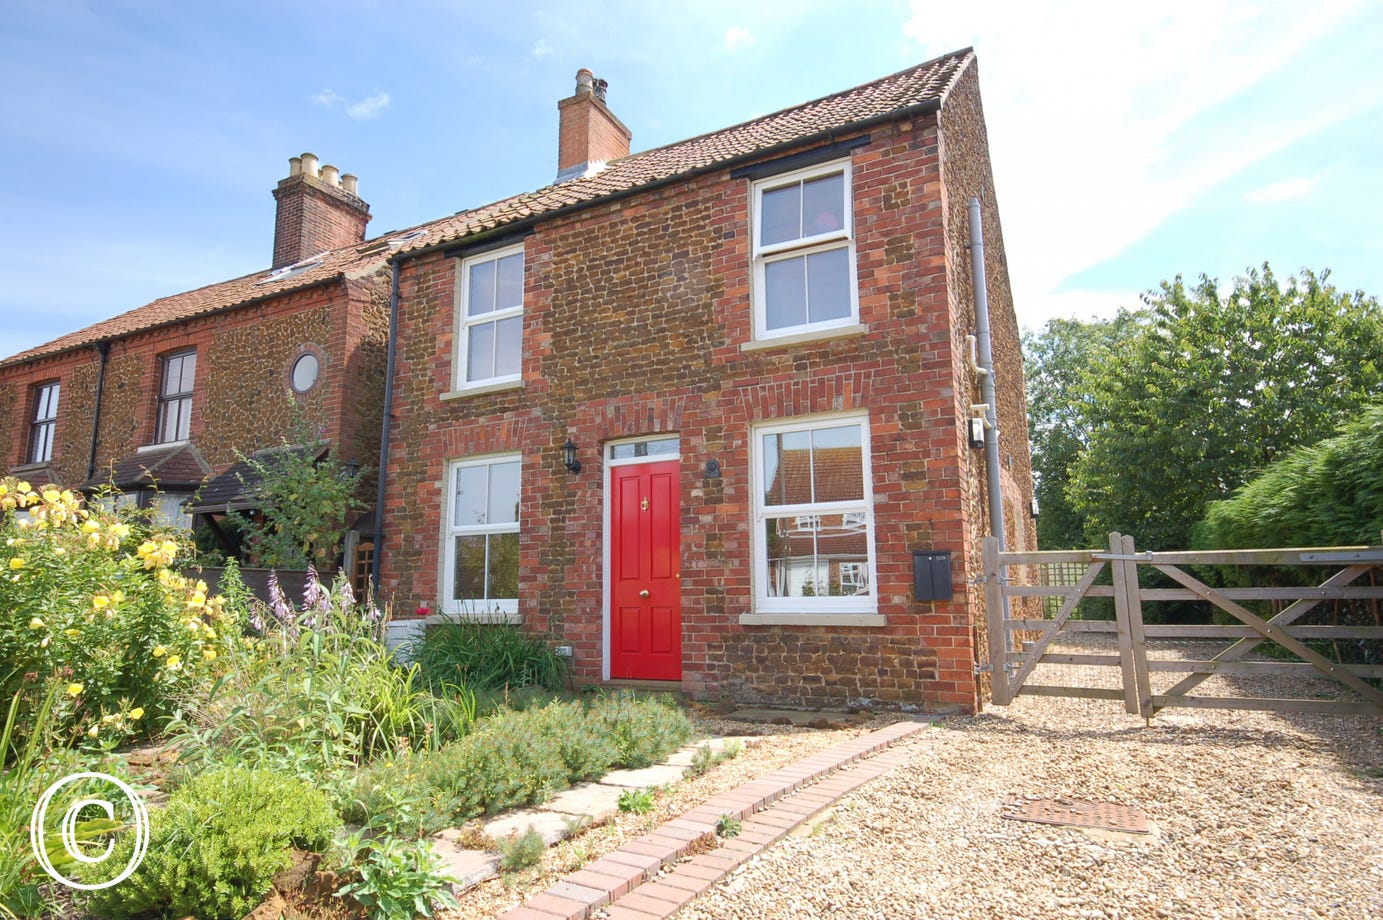 This attractively furnished detached cottage is situated in the centre of the village. It combines character features with modern comforts and is a warm and welcoming place to stay at any time of the year.